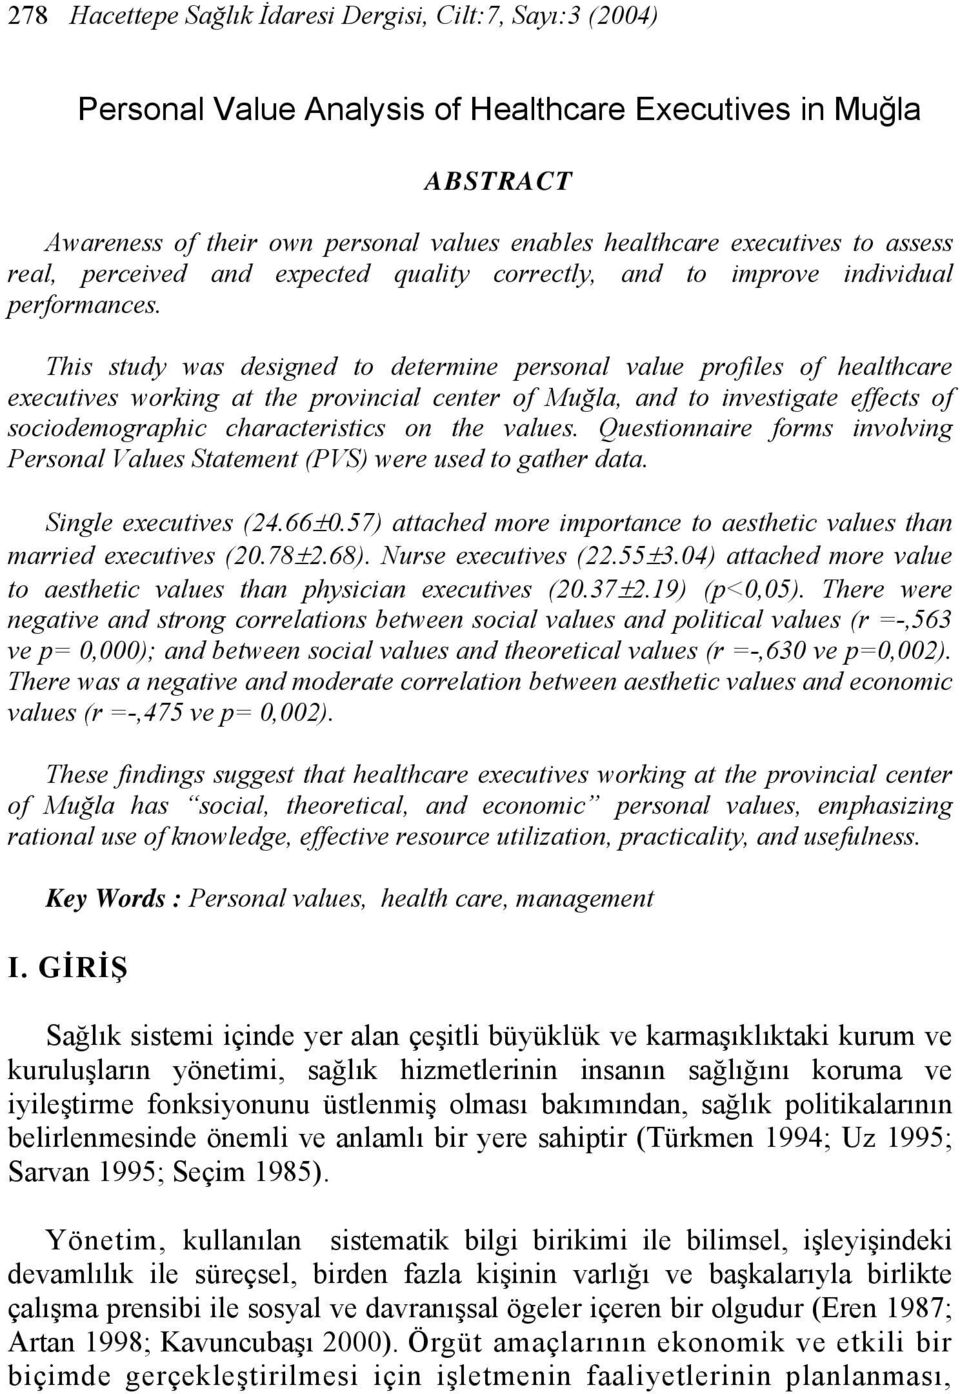 This study was designed to determine personal value profiles of healthcare executives working at the provincial center of Muğla, and to investigate effects of sociodemographic characteristics on the